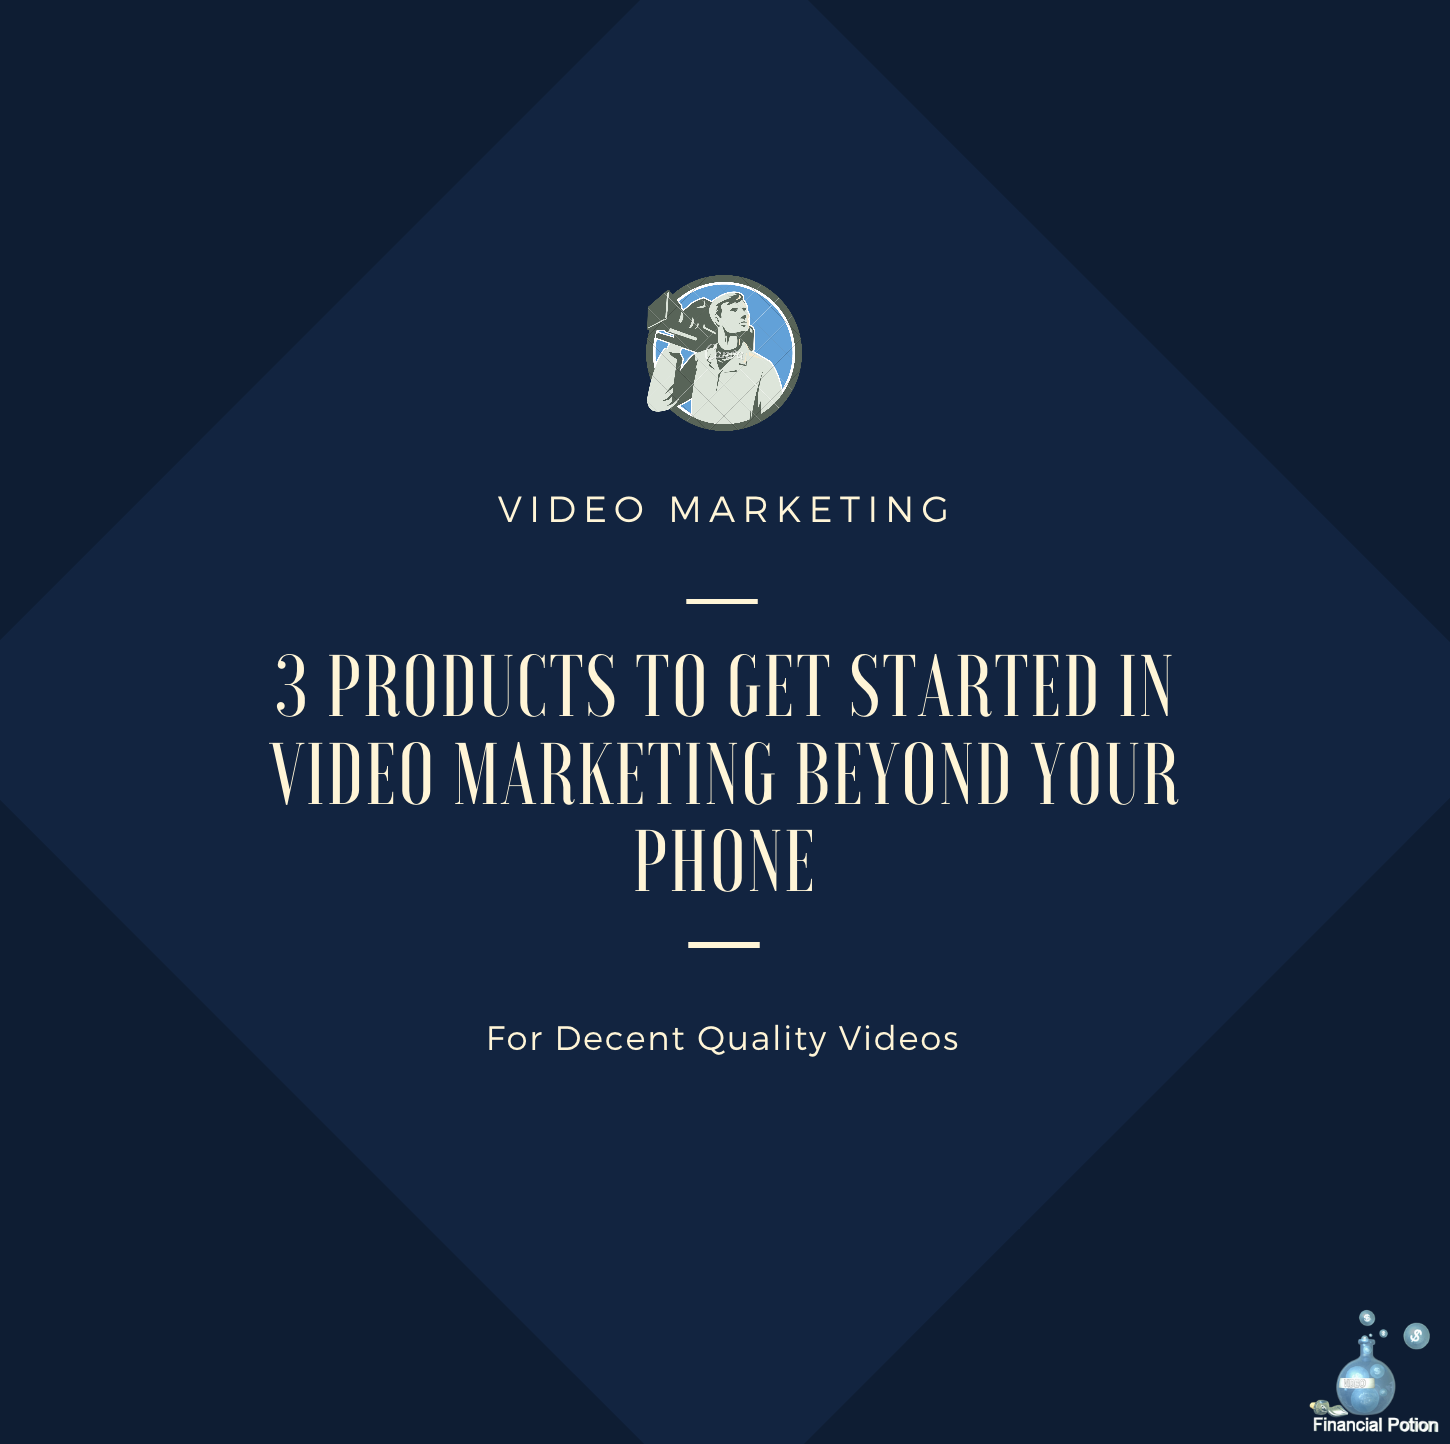 Video Marketing, Phone Videos, Quality Videos, Video Products